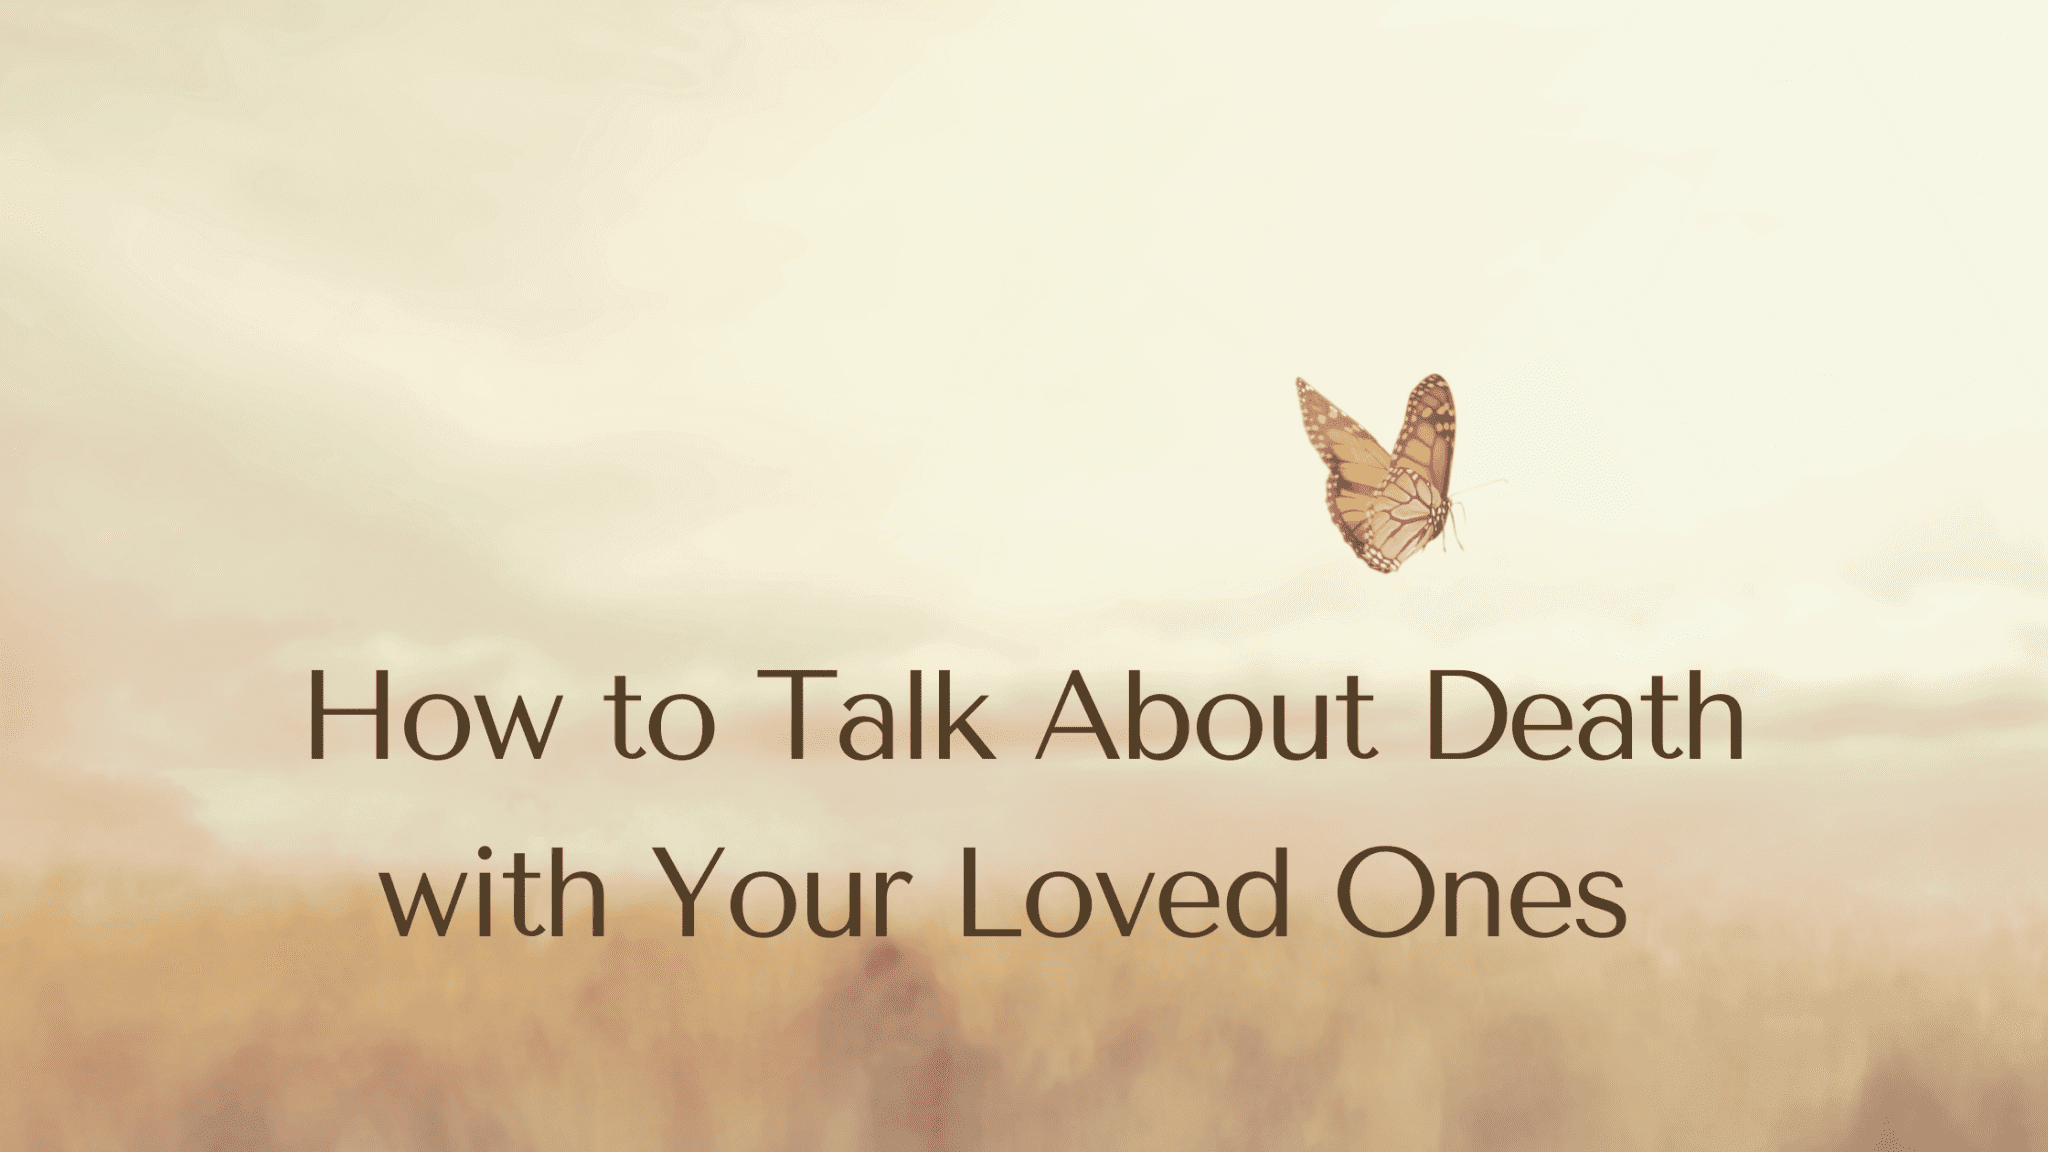 How to Talk About Death with Your Loved Ones